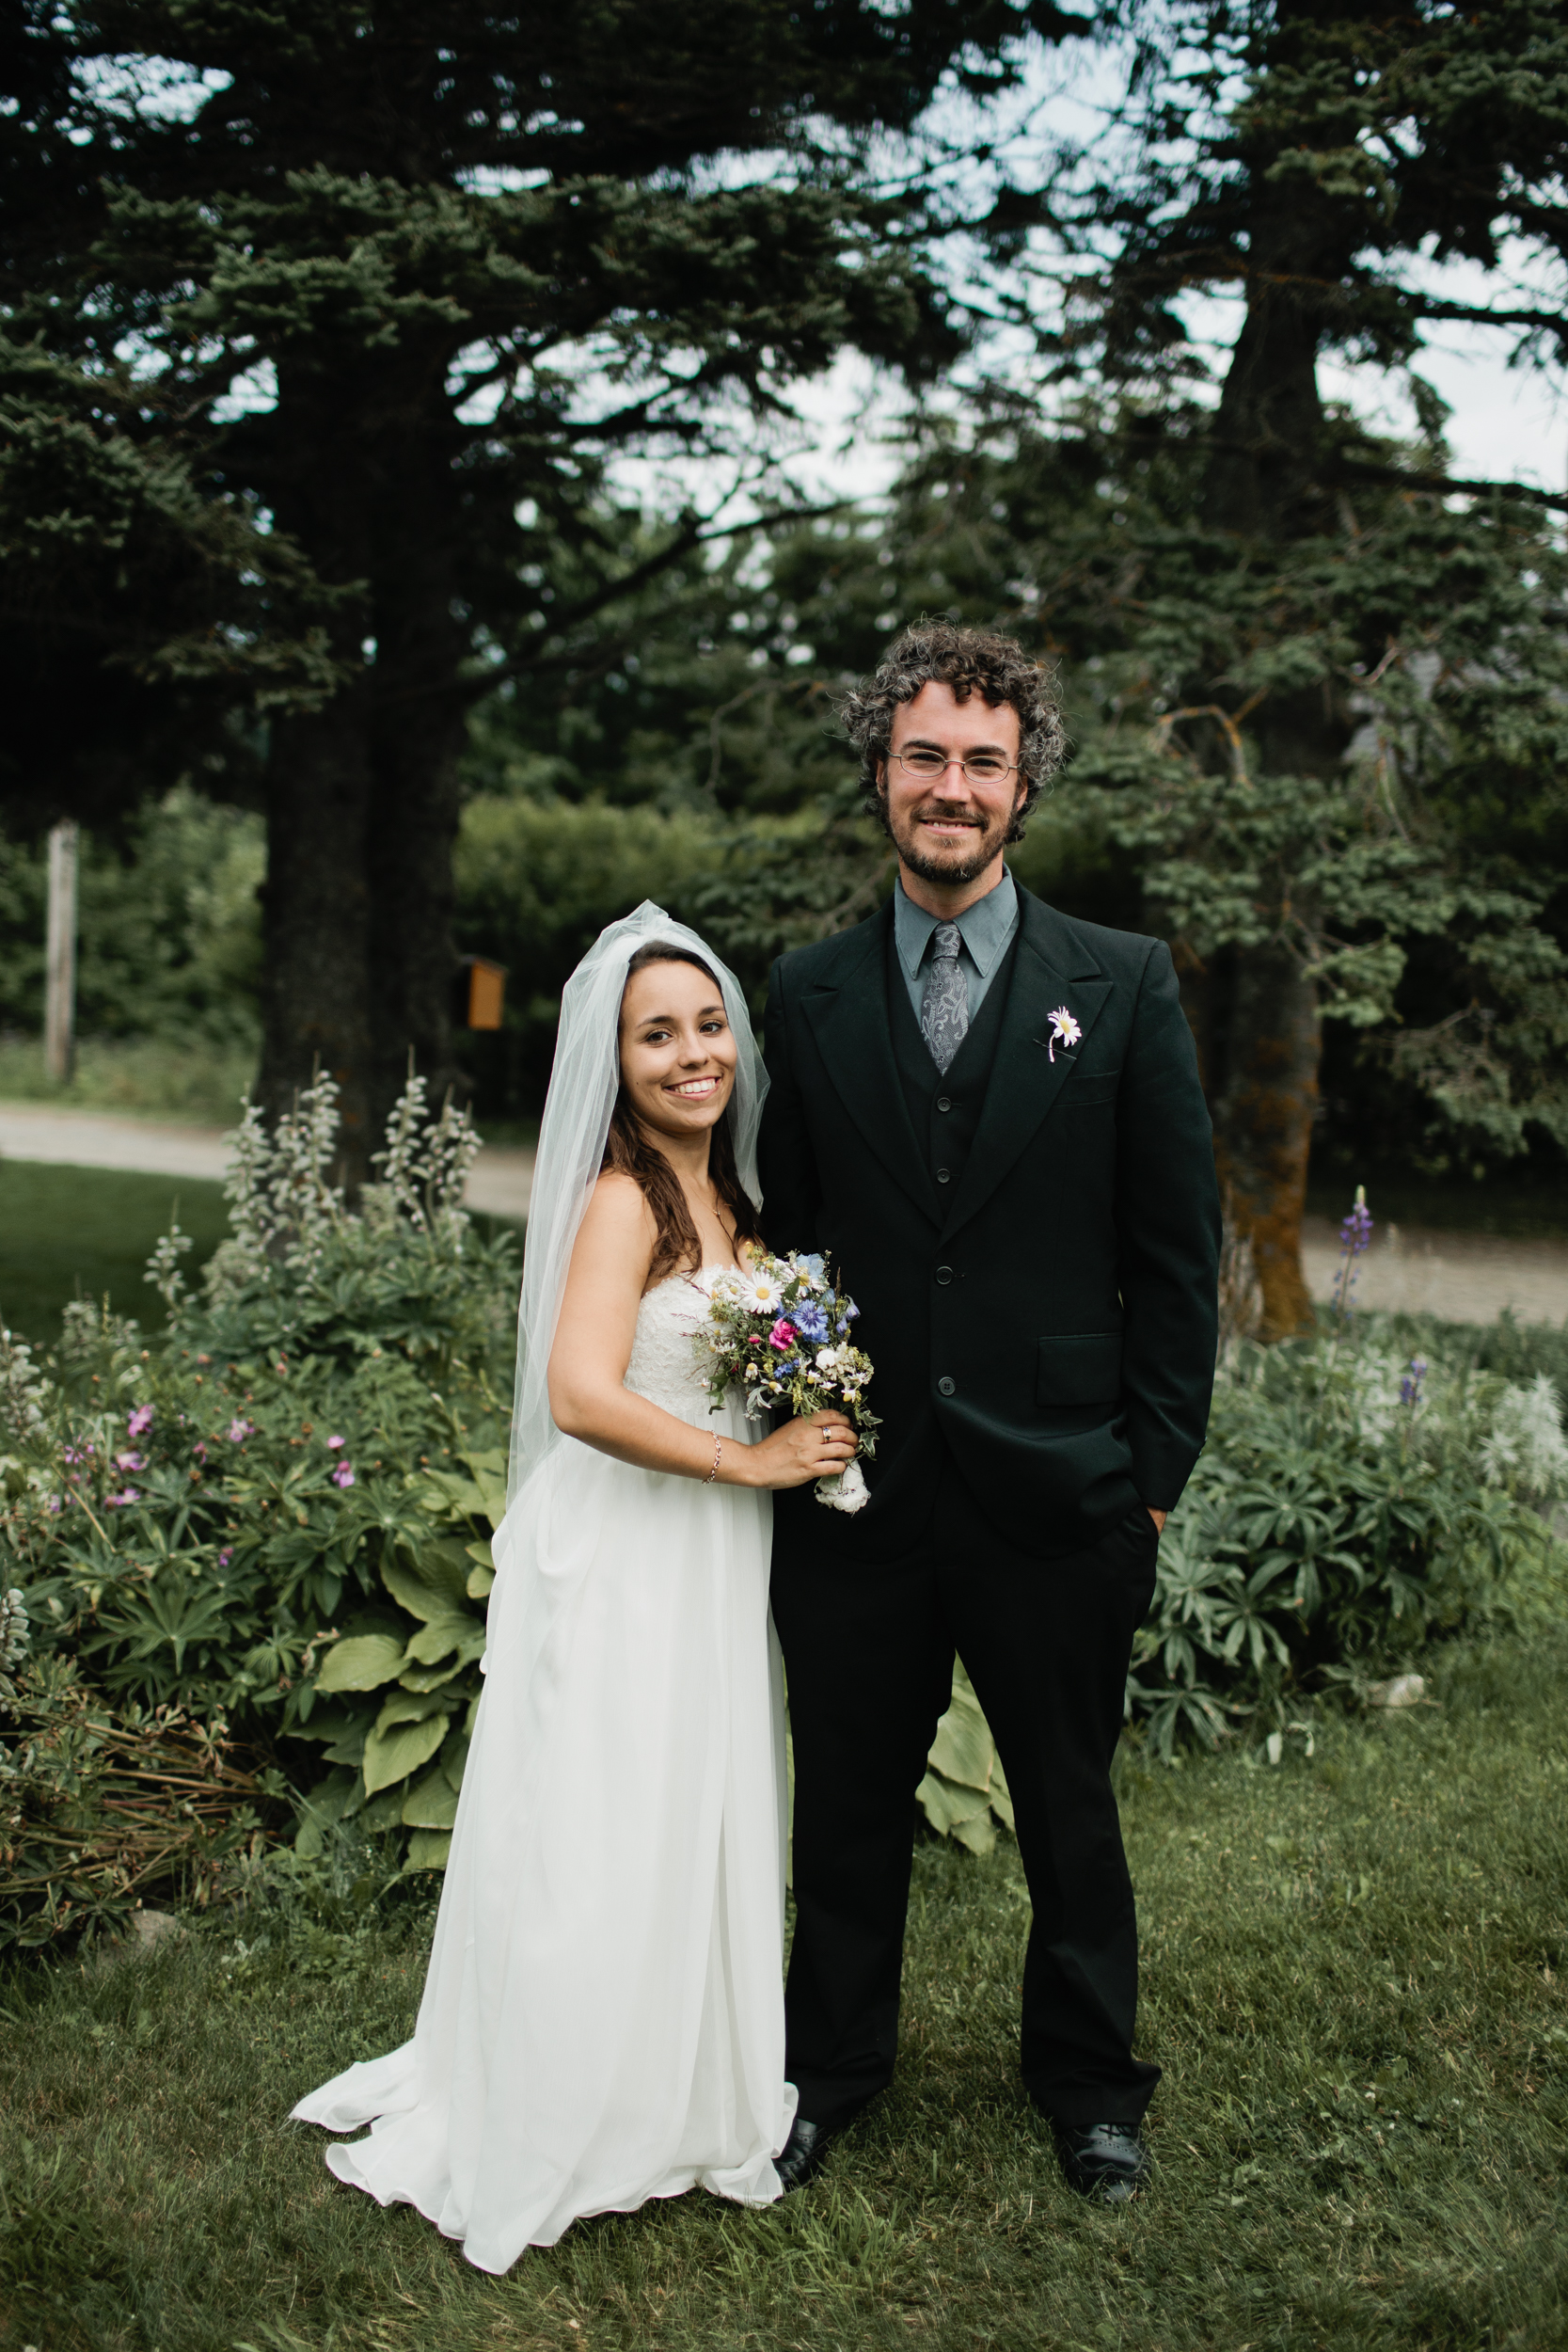 Monhegan-Island-Wedding-94.jpg